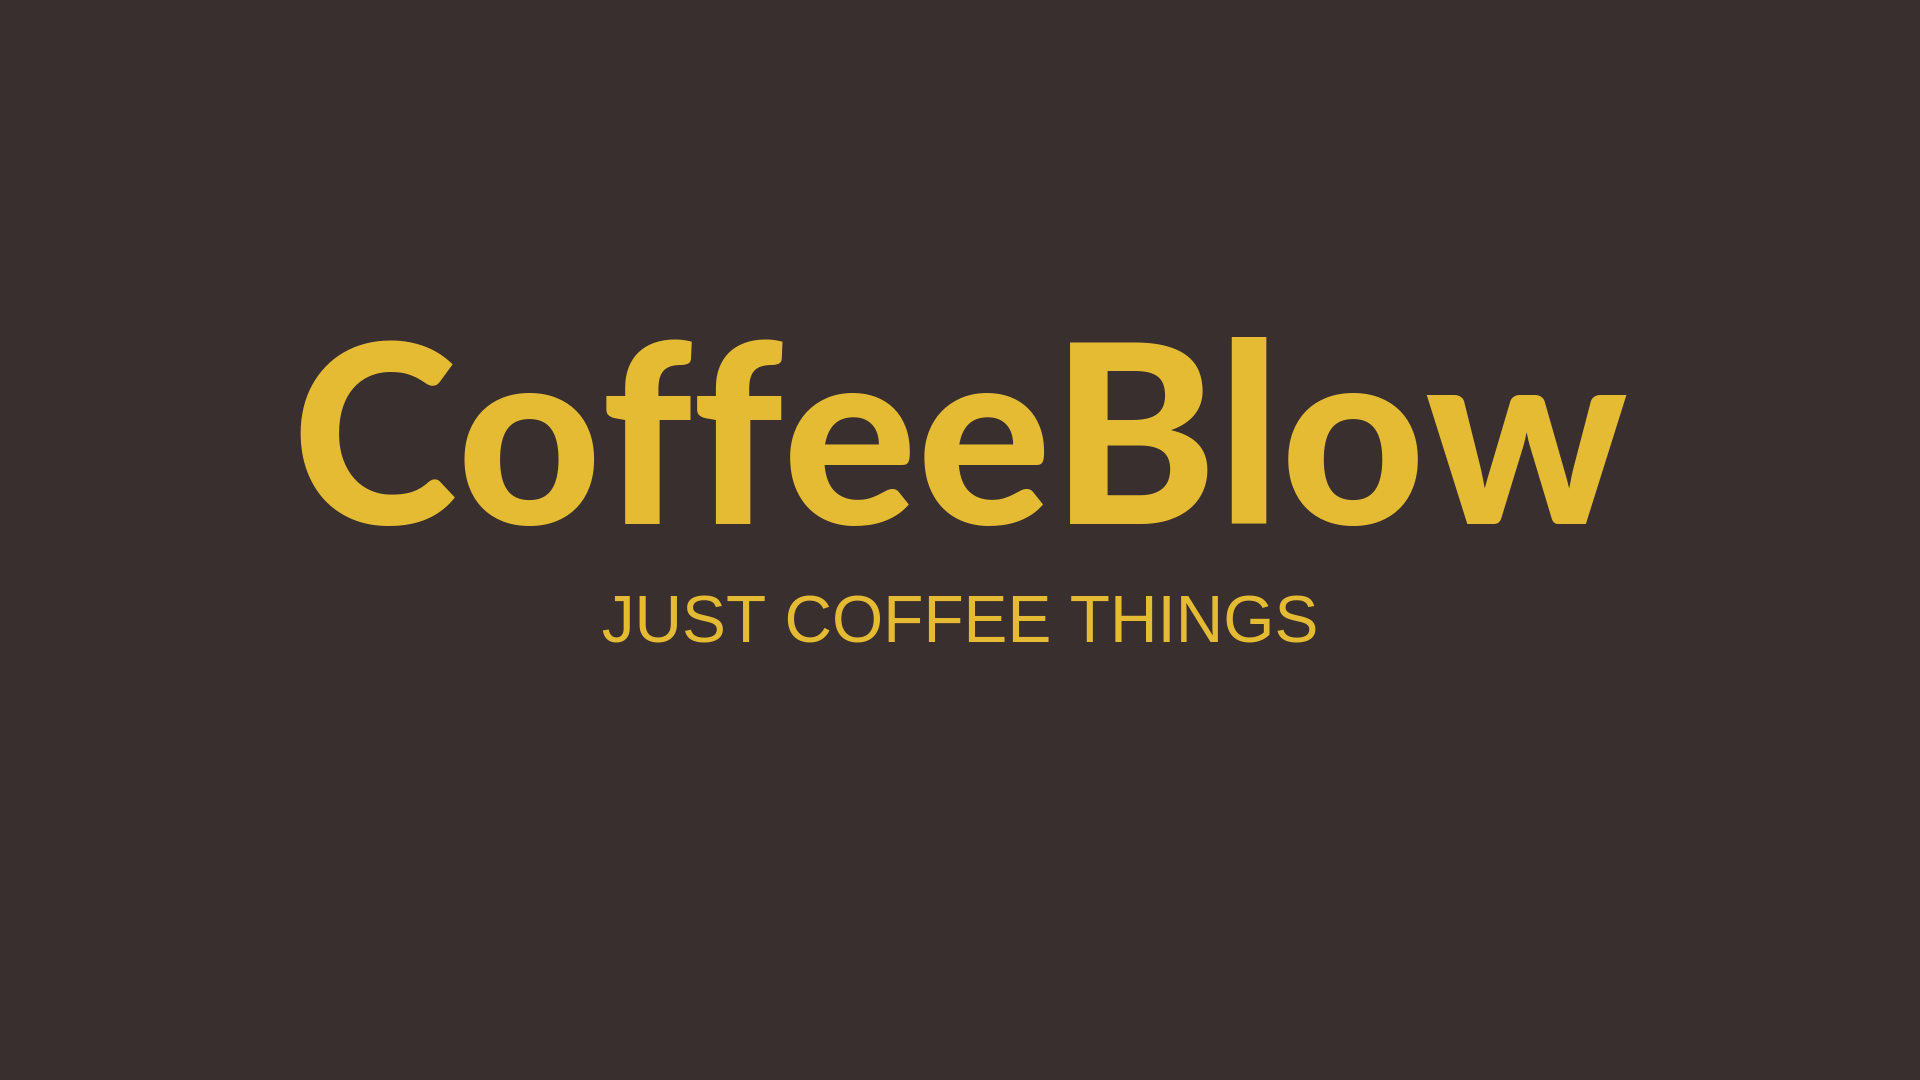 About CoffeeBlow